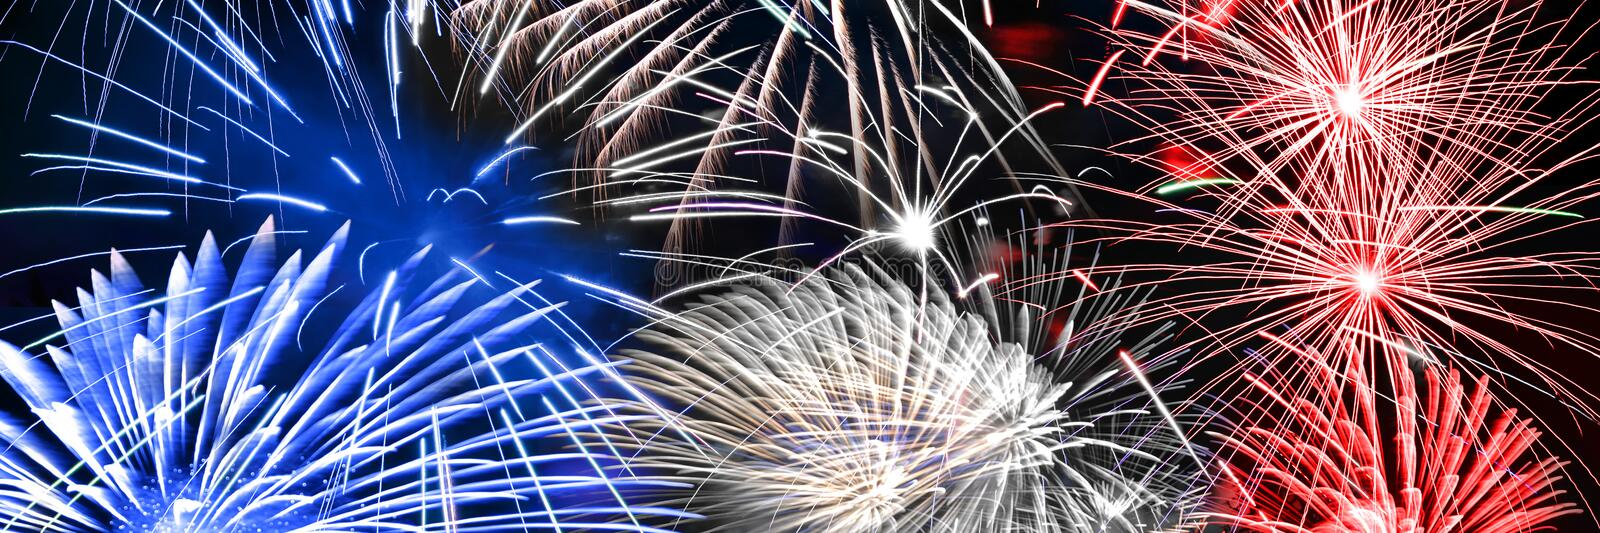 Blue white and red fireworks panoramic background stock photography